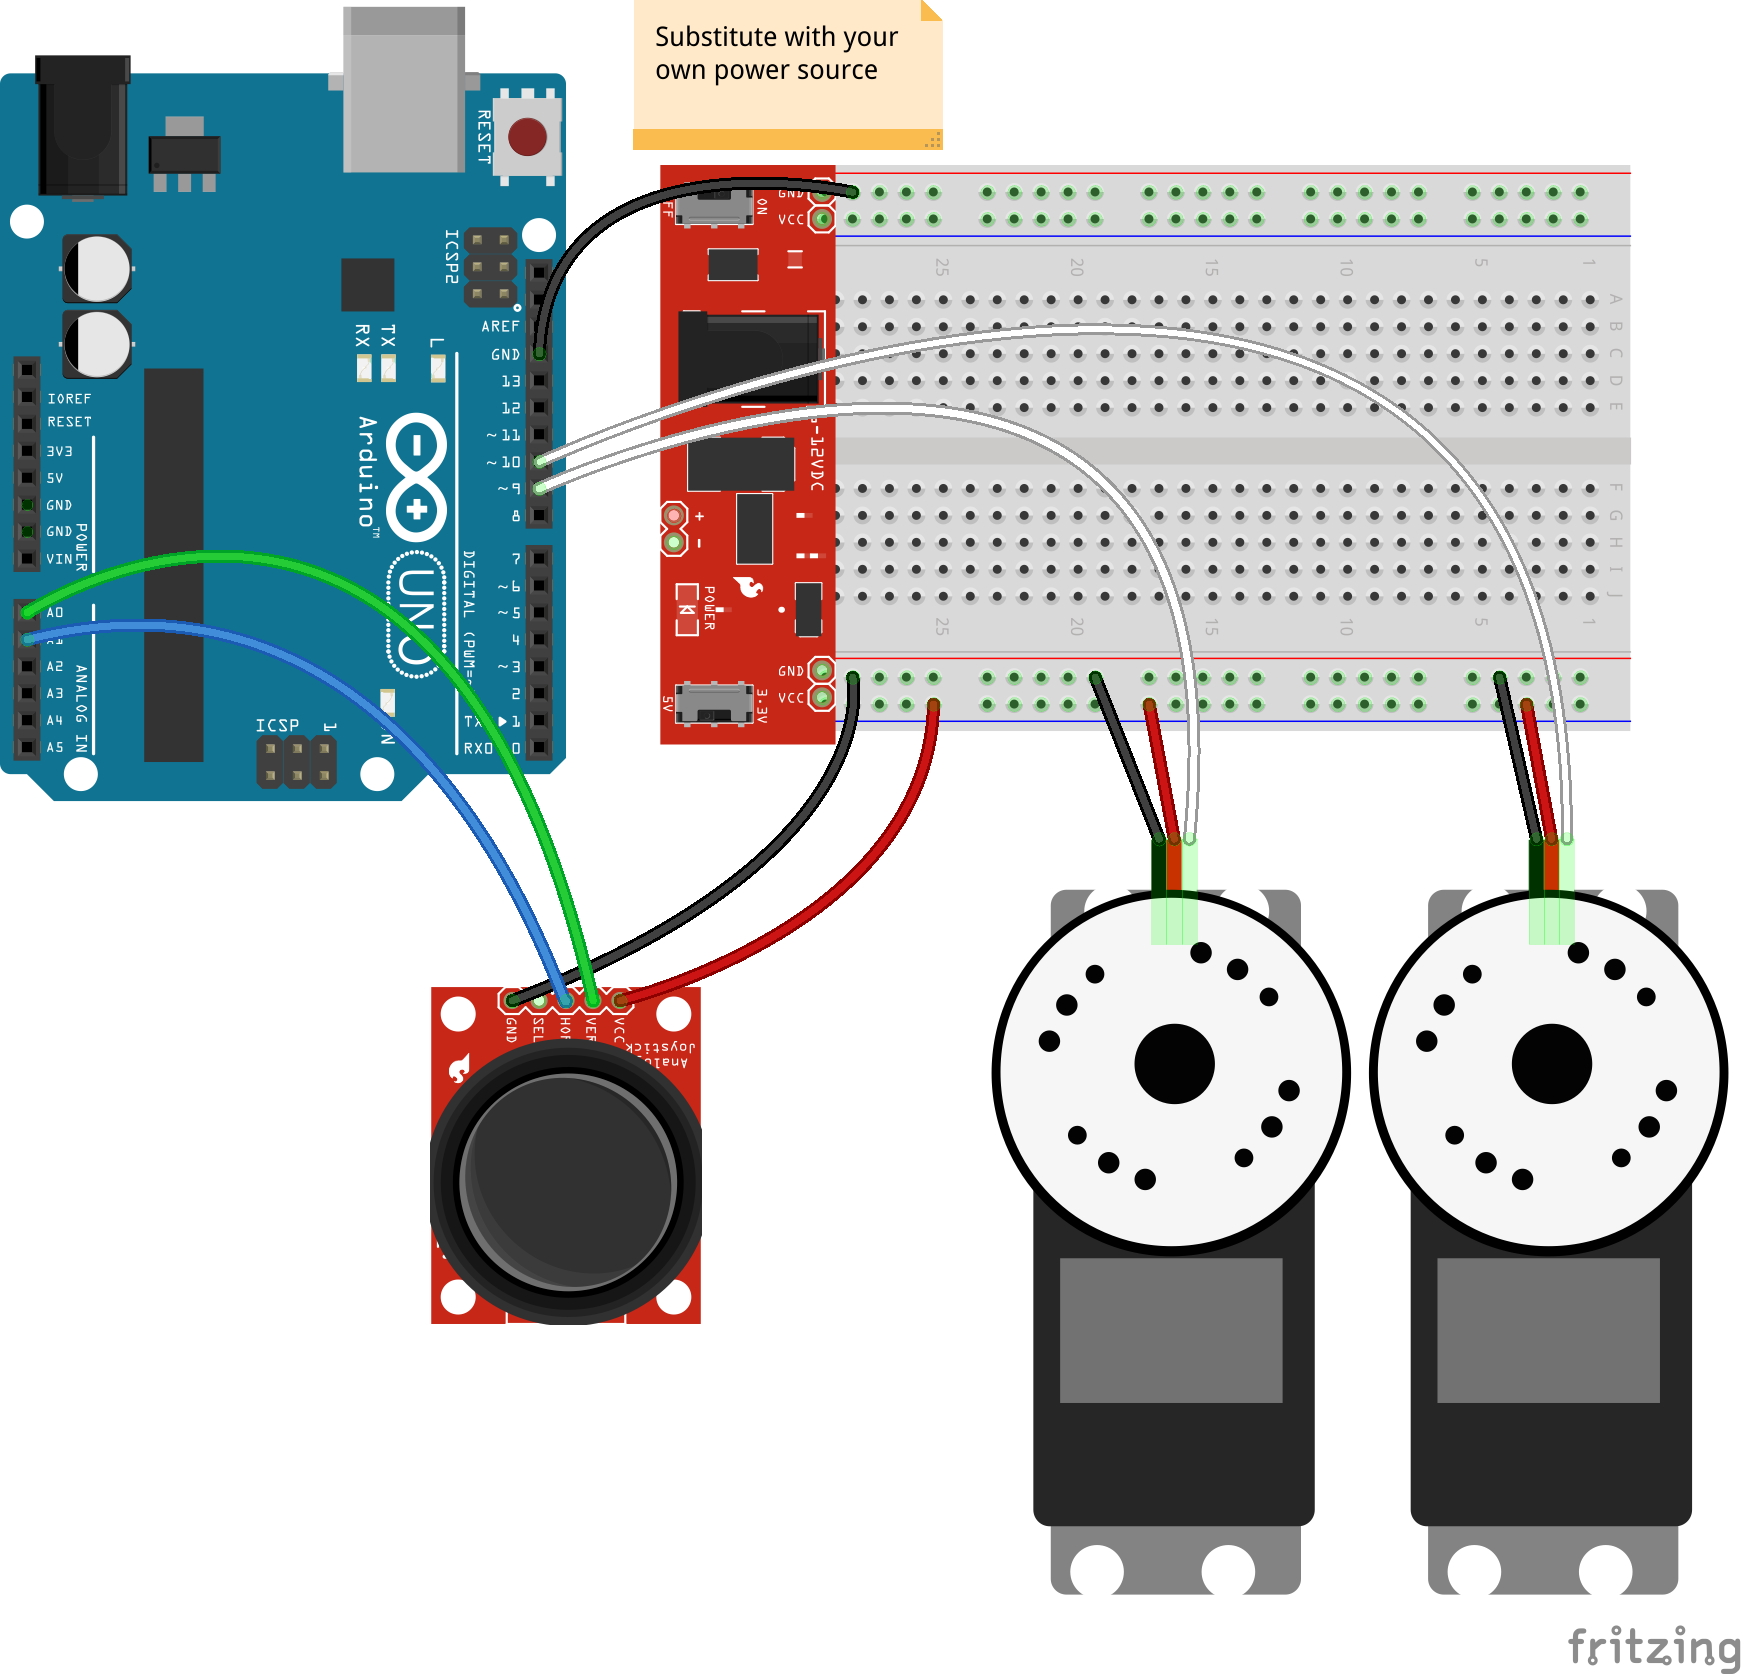 JavaScript Robotics: Joystick - Pan + Tilt control with Johnny-Five